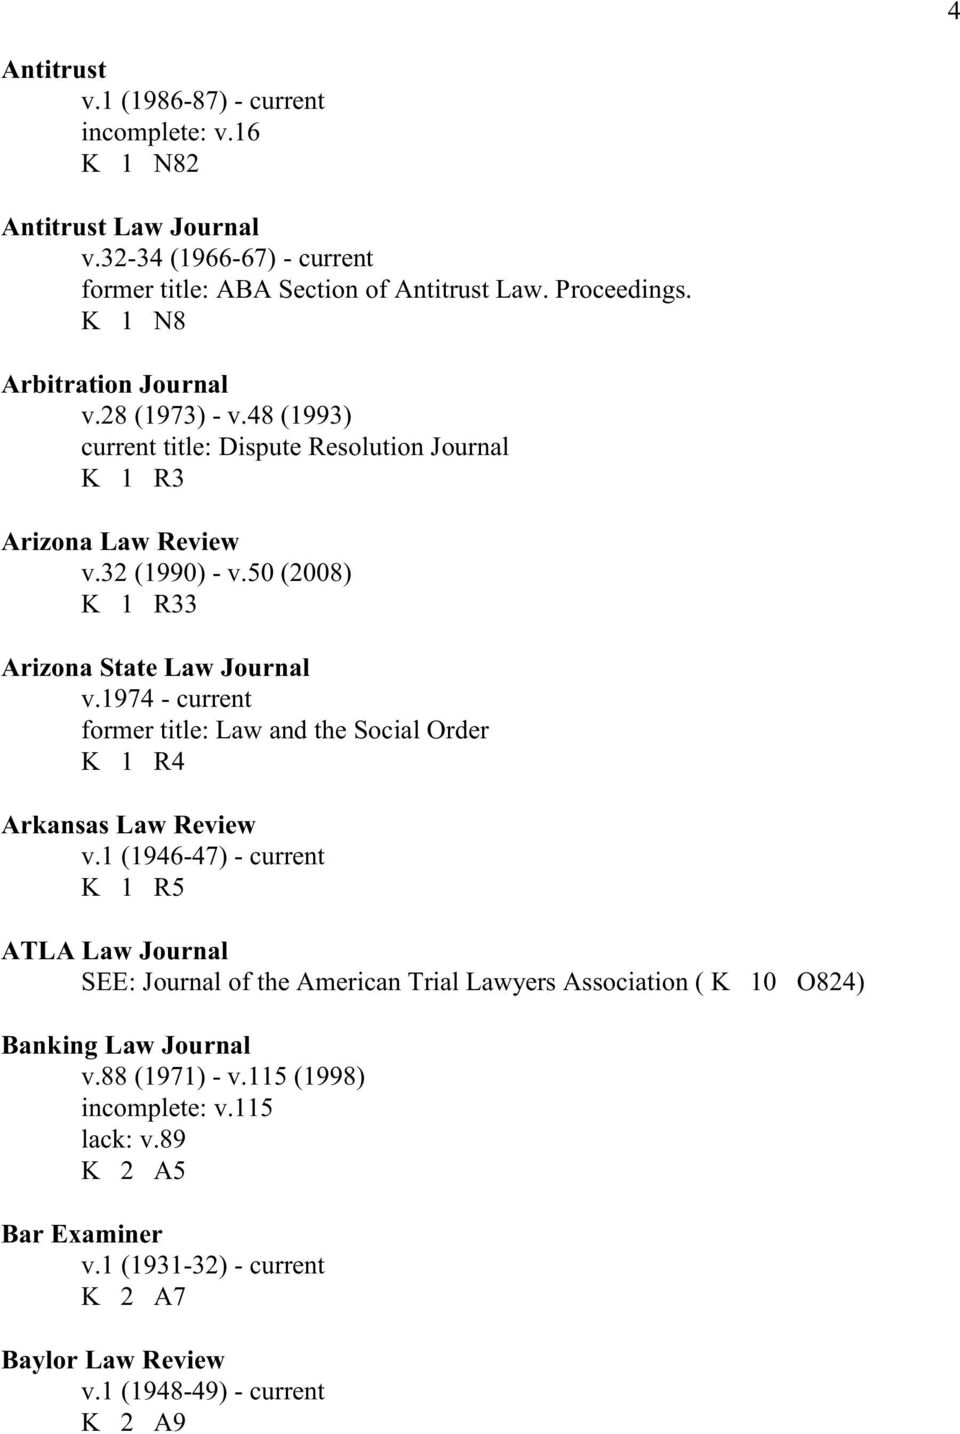 50 (2008) K 1 R33 Arizona State Law Journal v.1974 - current former title: Law and the Social Order K 1 R4 Arkansas Law Review v.